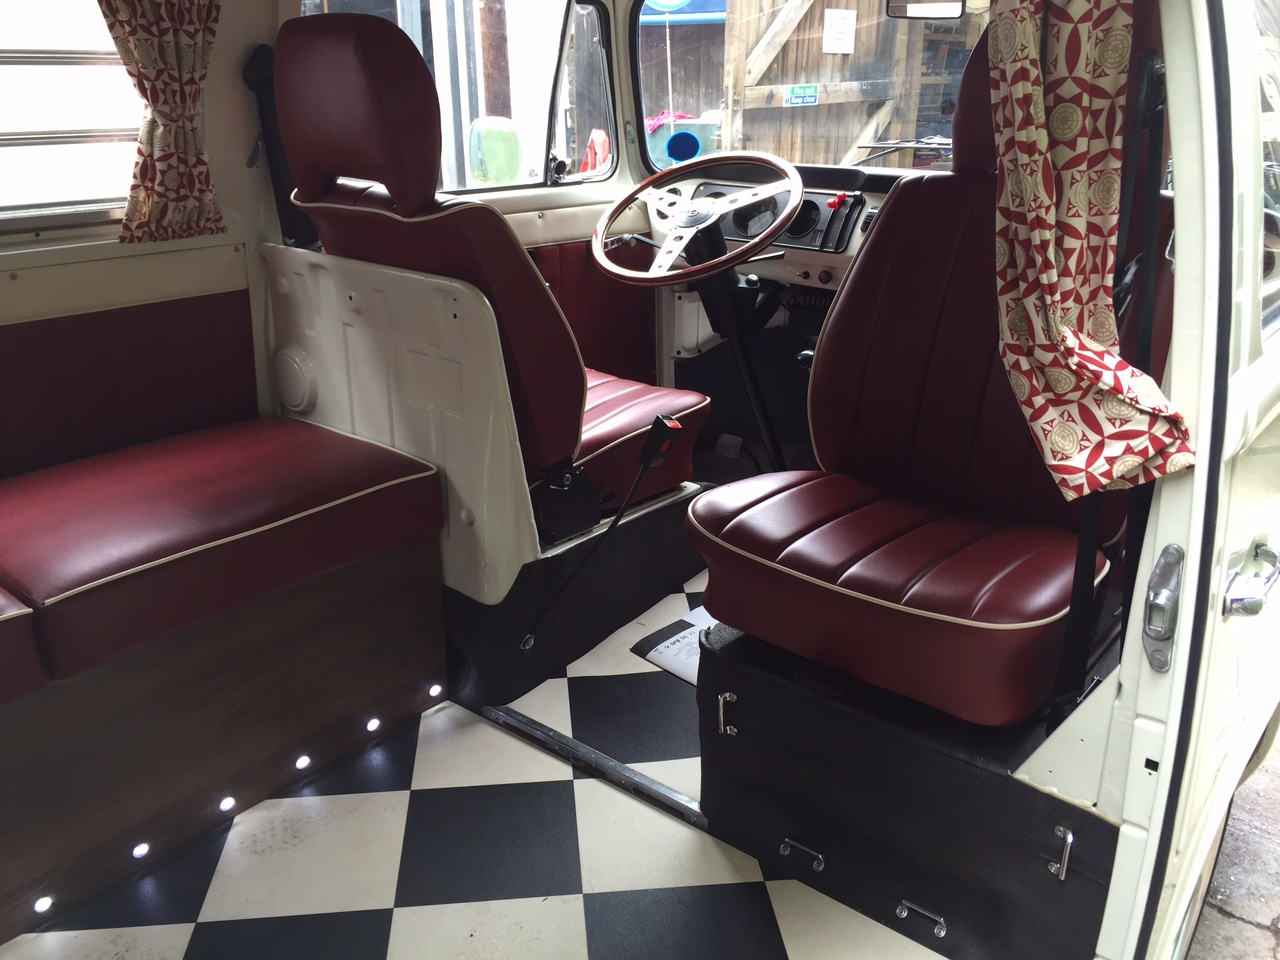 VW Westfalia Camper Van Interior